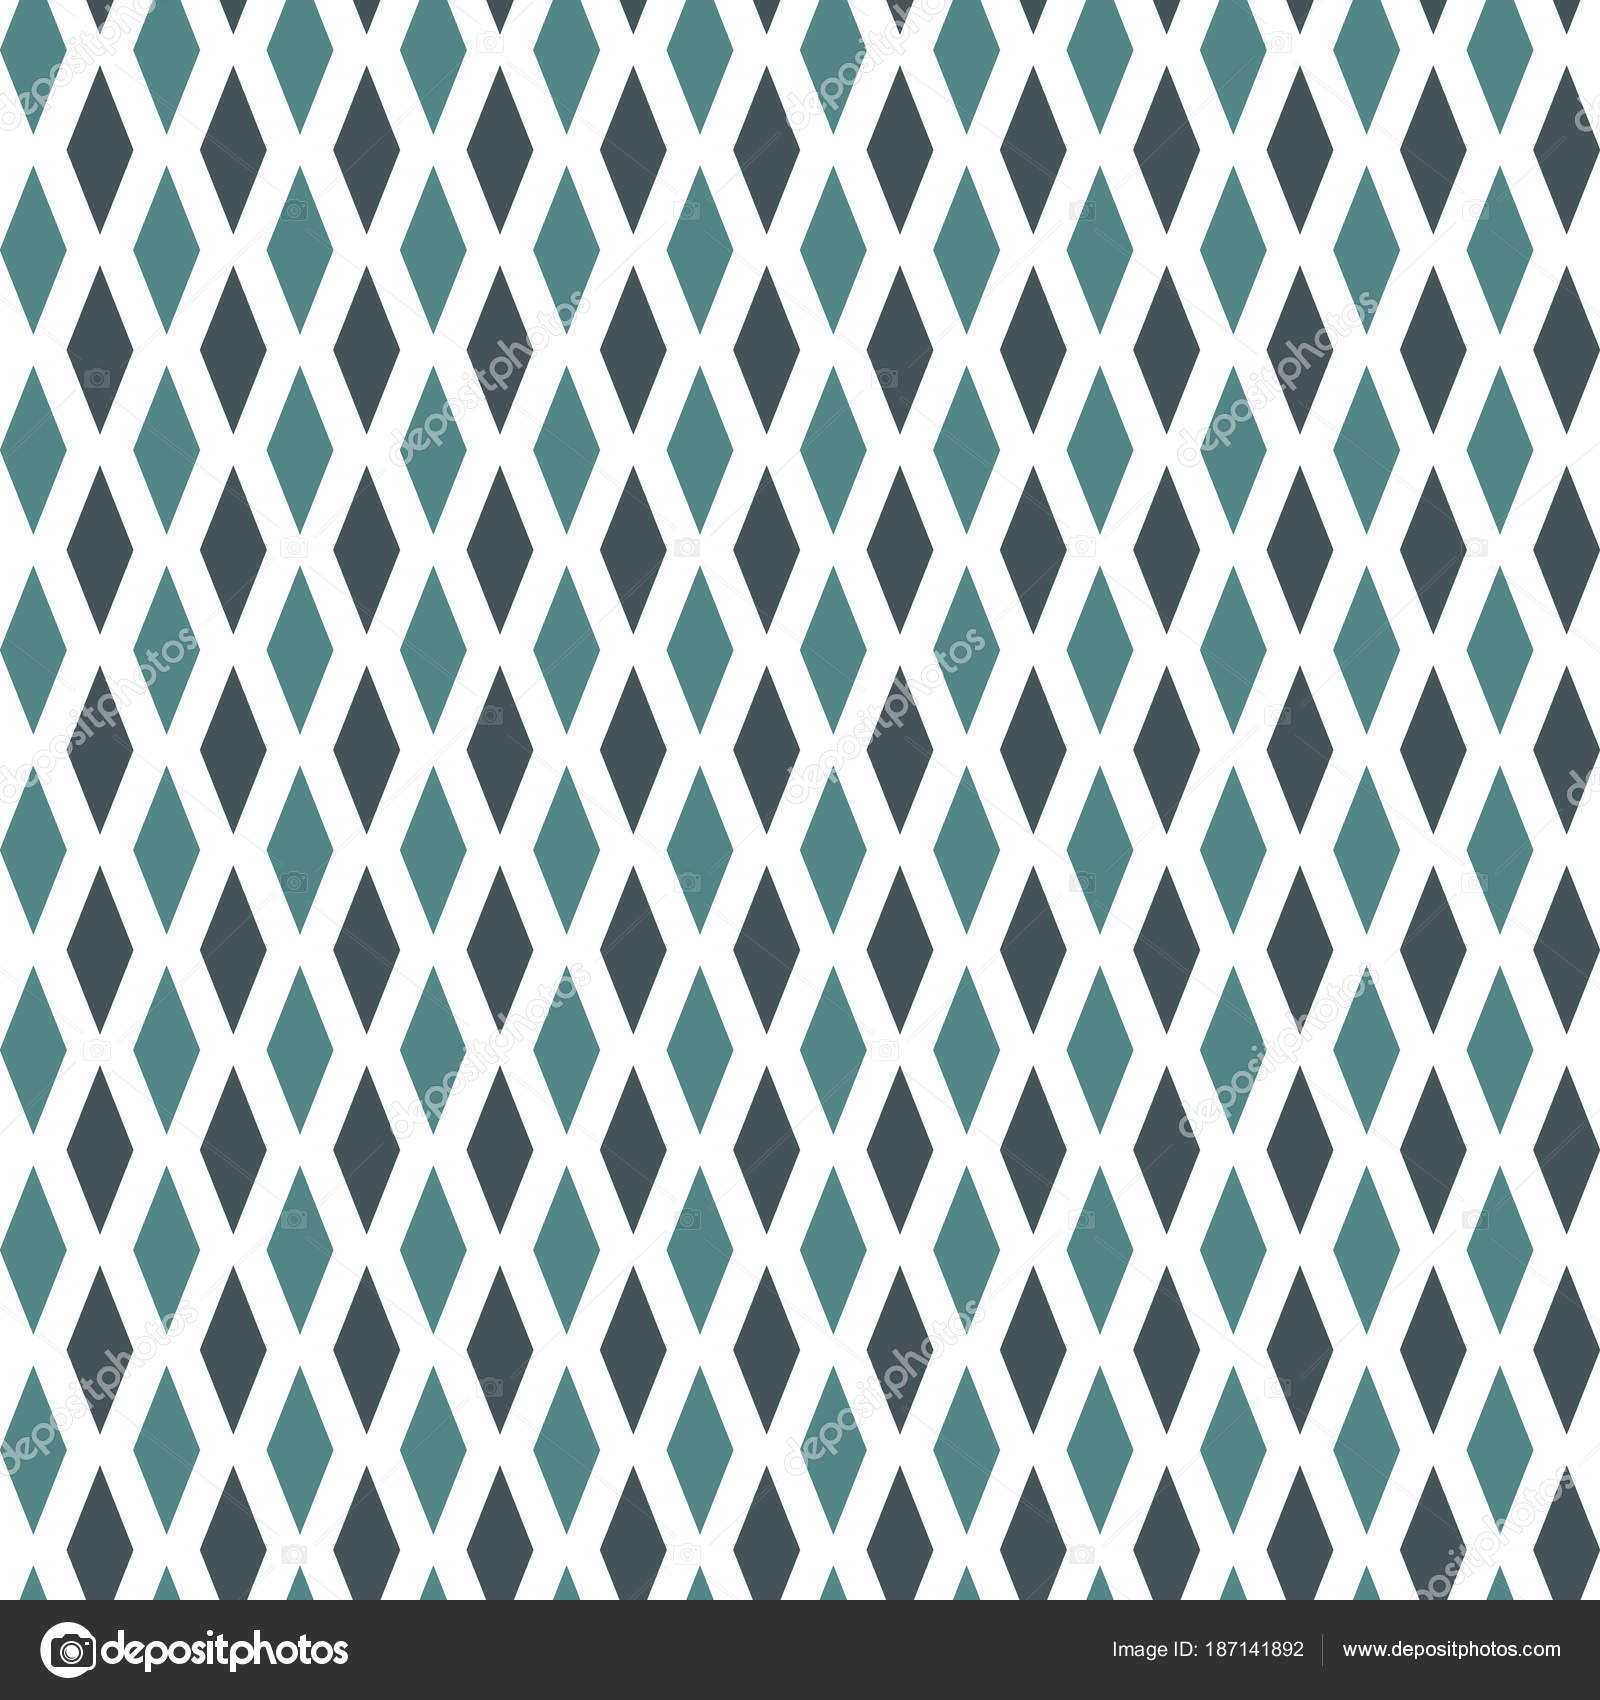 Seamless Pattern With Simple Ornament Argyle Wallpaper Rhombuses And Lozenges Motif Repeated Geometric